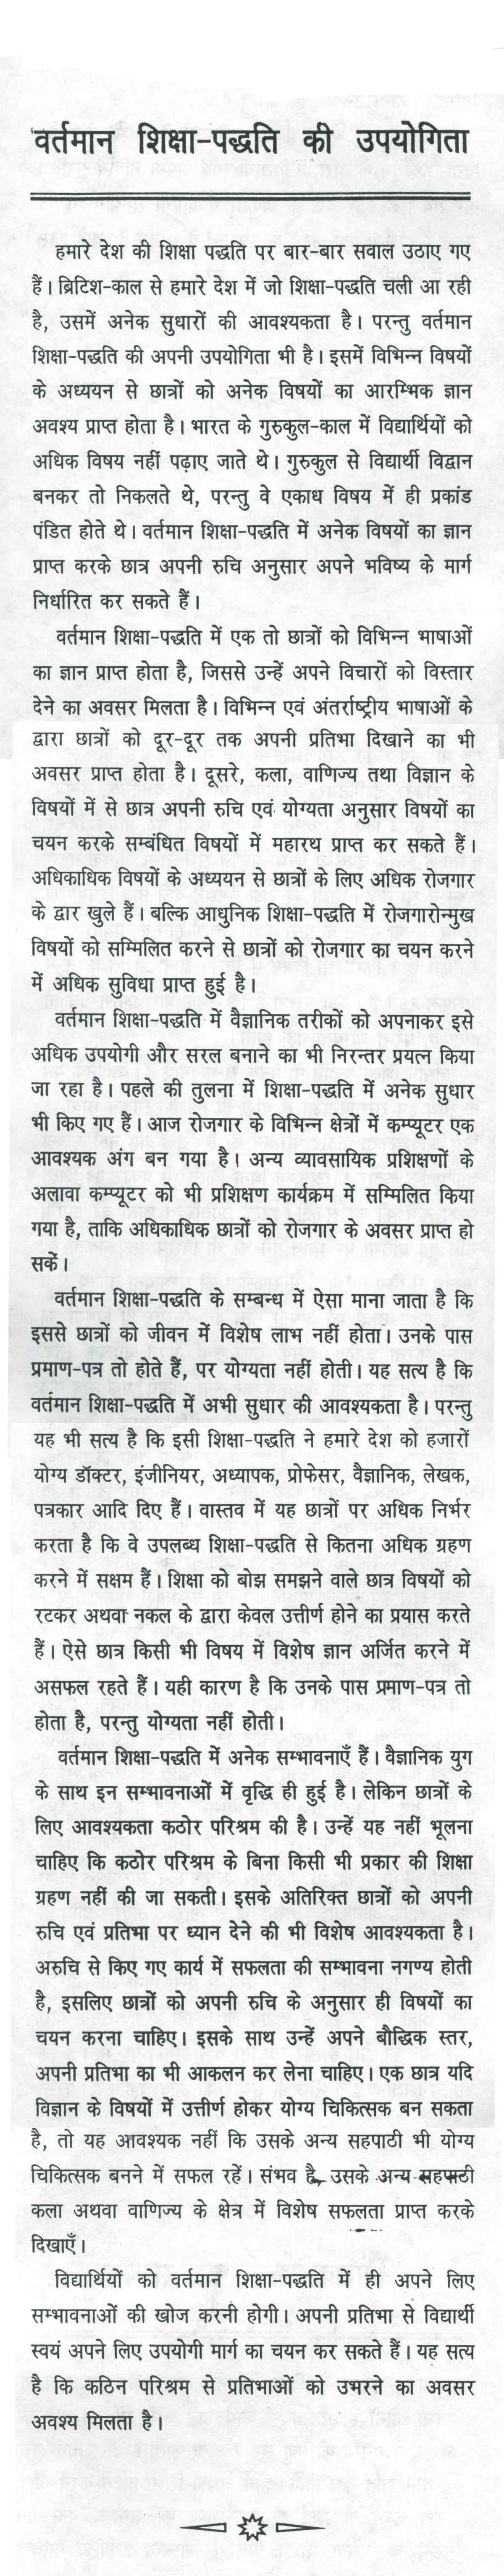 018 Cleanliness Essay In Hindi 10042 Thumb Sensational Is Godliness School Full